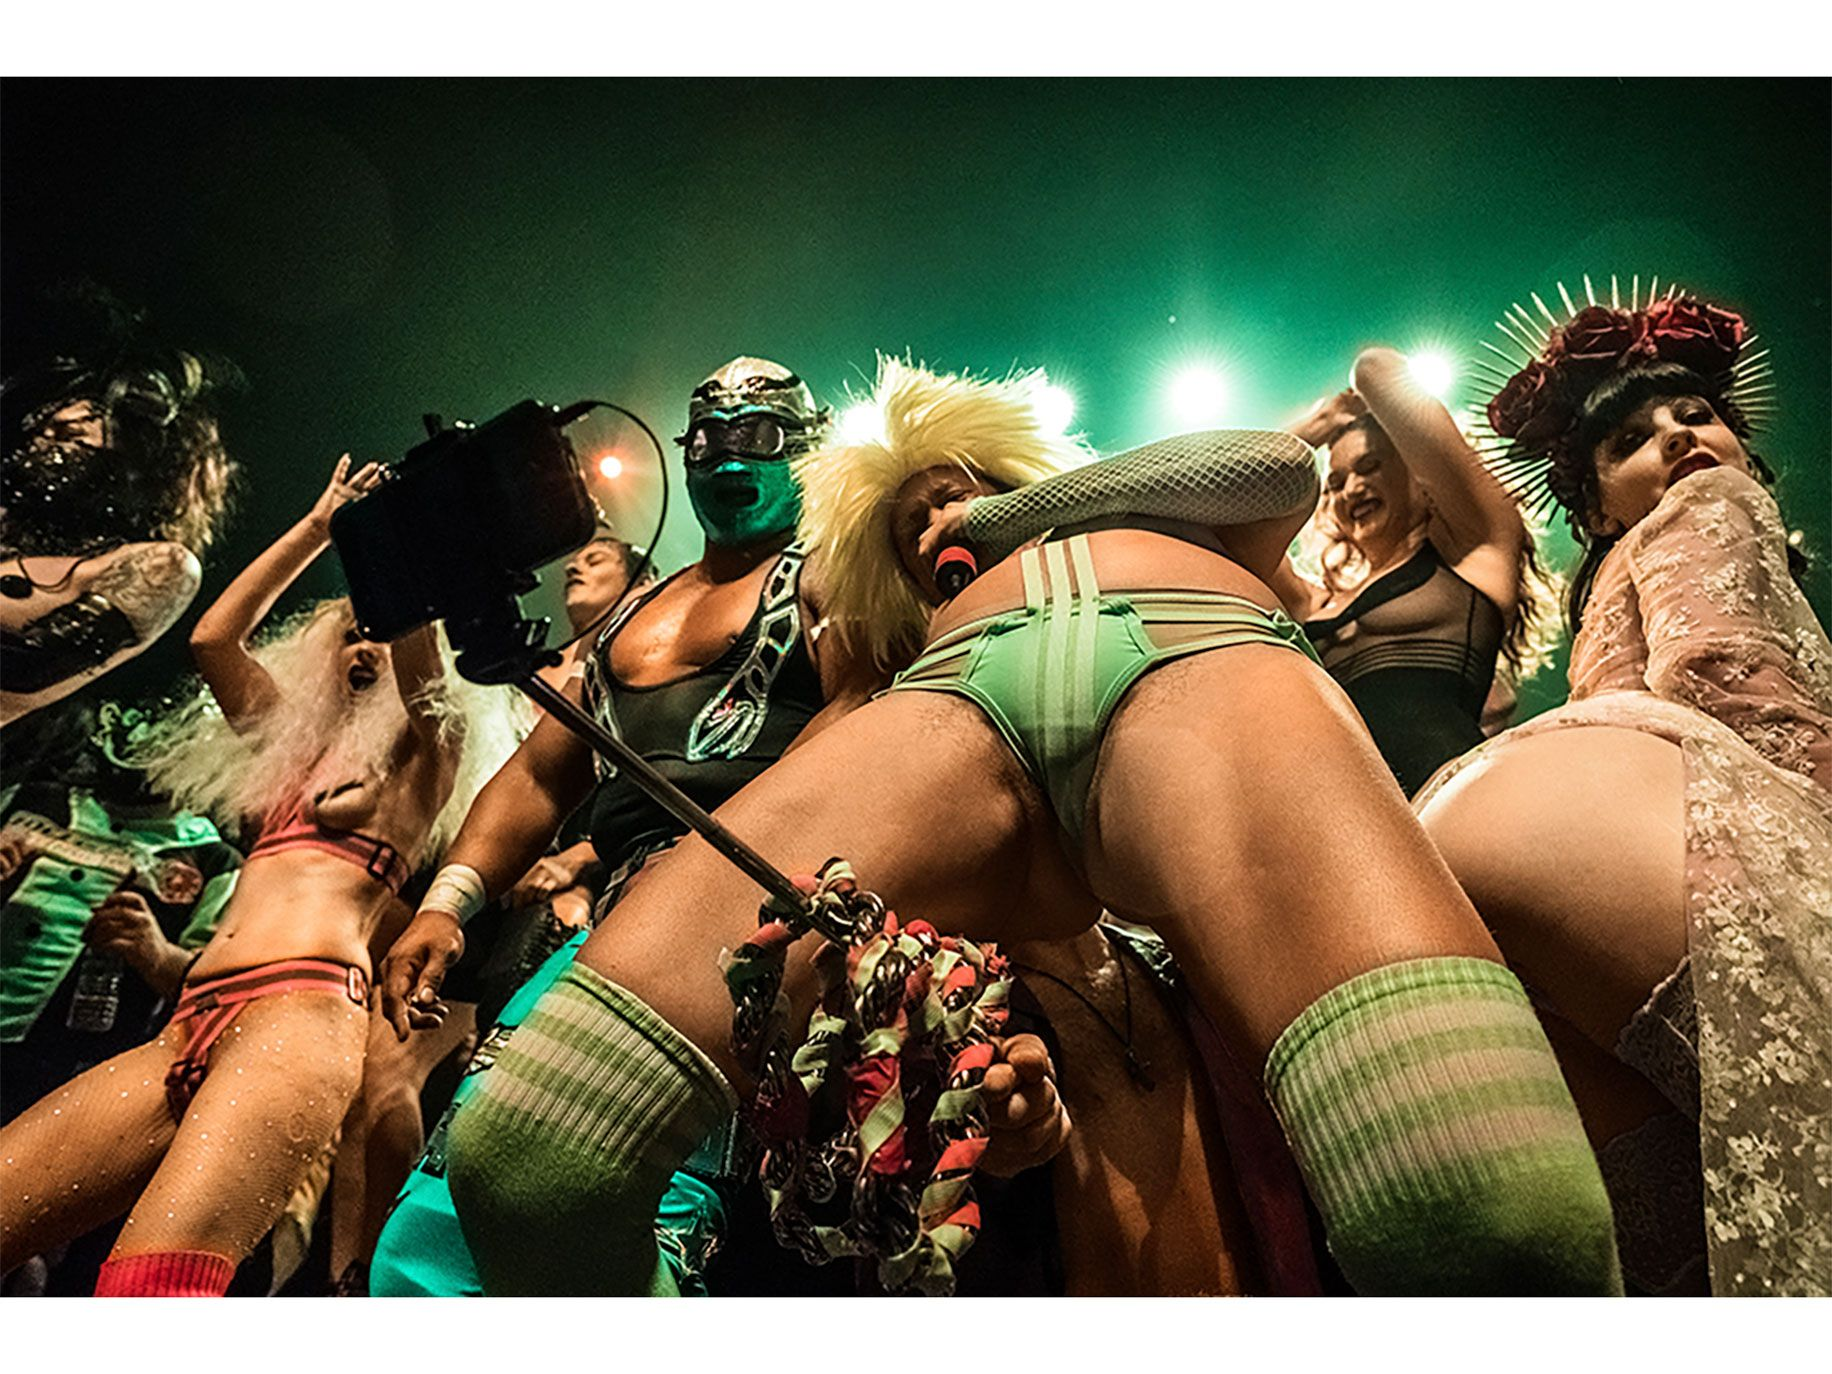 Peaches performs as Heino's arm sneaks through her legs for a selfie shot.